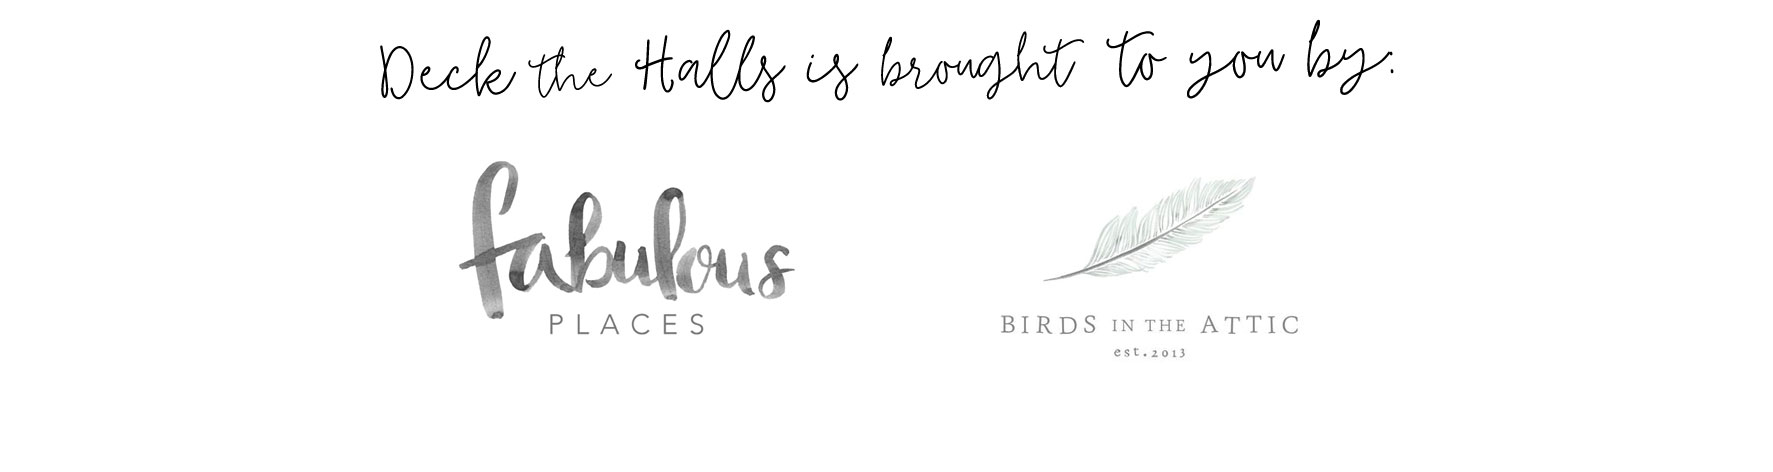 fabulous places birds in the attic deck the halls